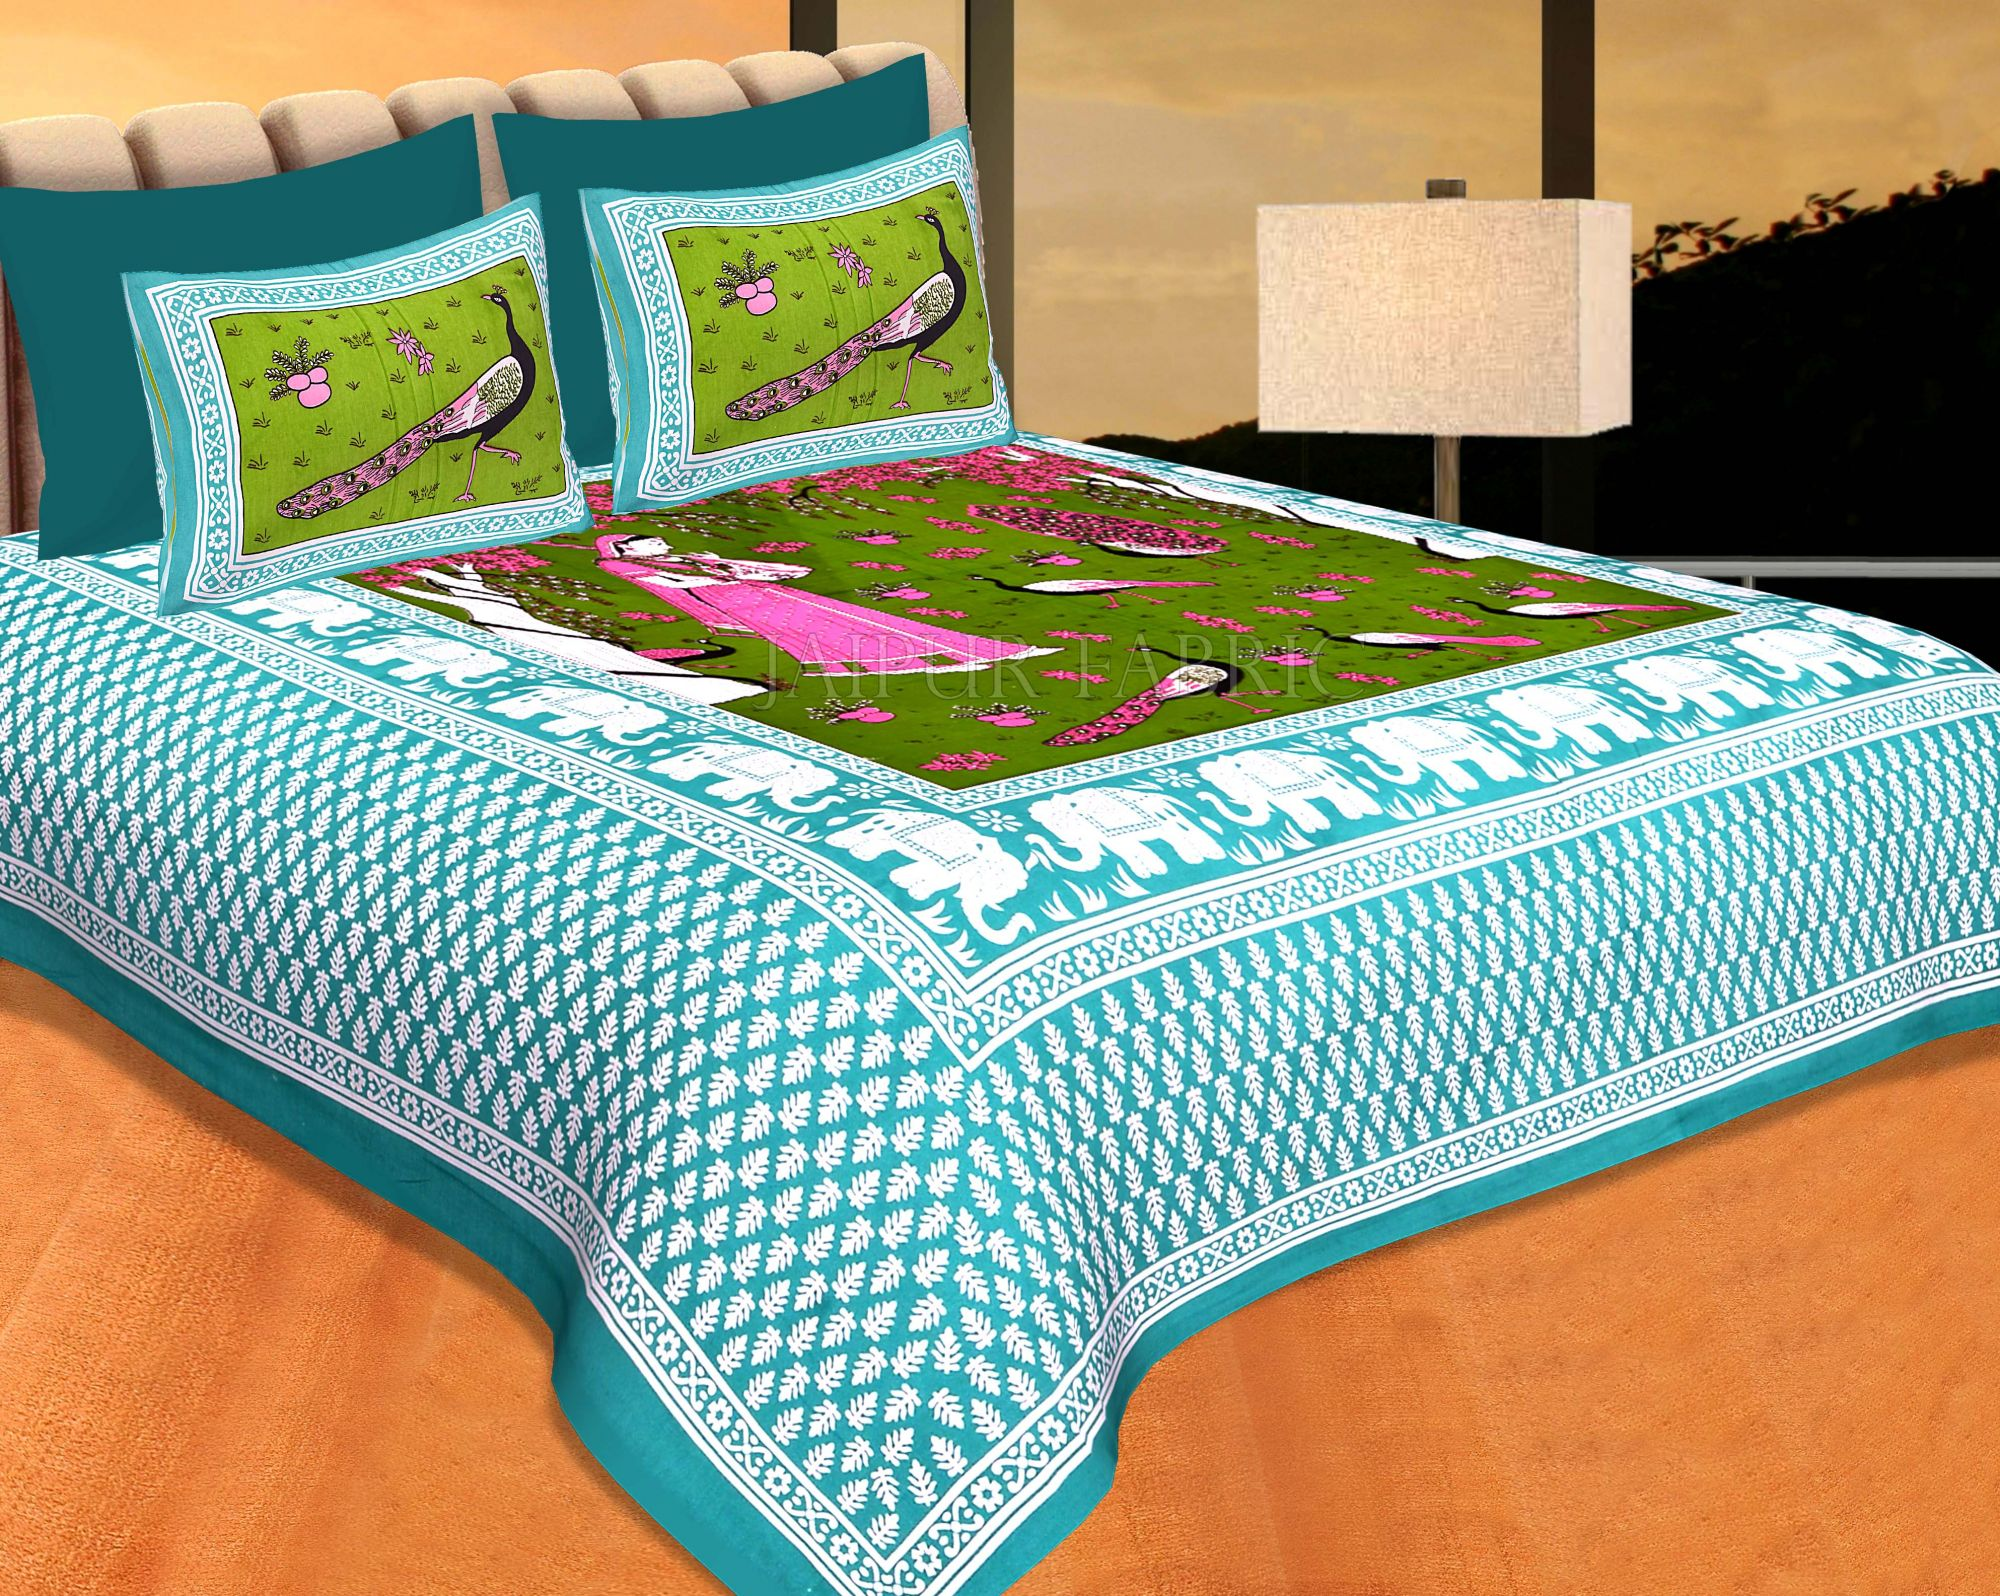 Green Border Dark Green Base Meera With Peacocks Cotton Double Bedsheet